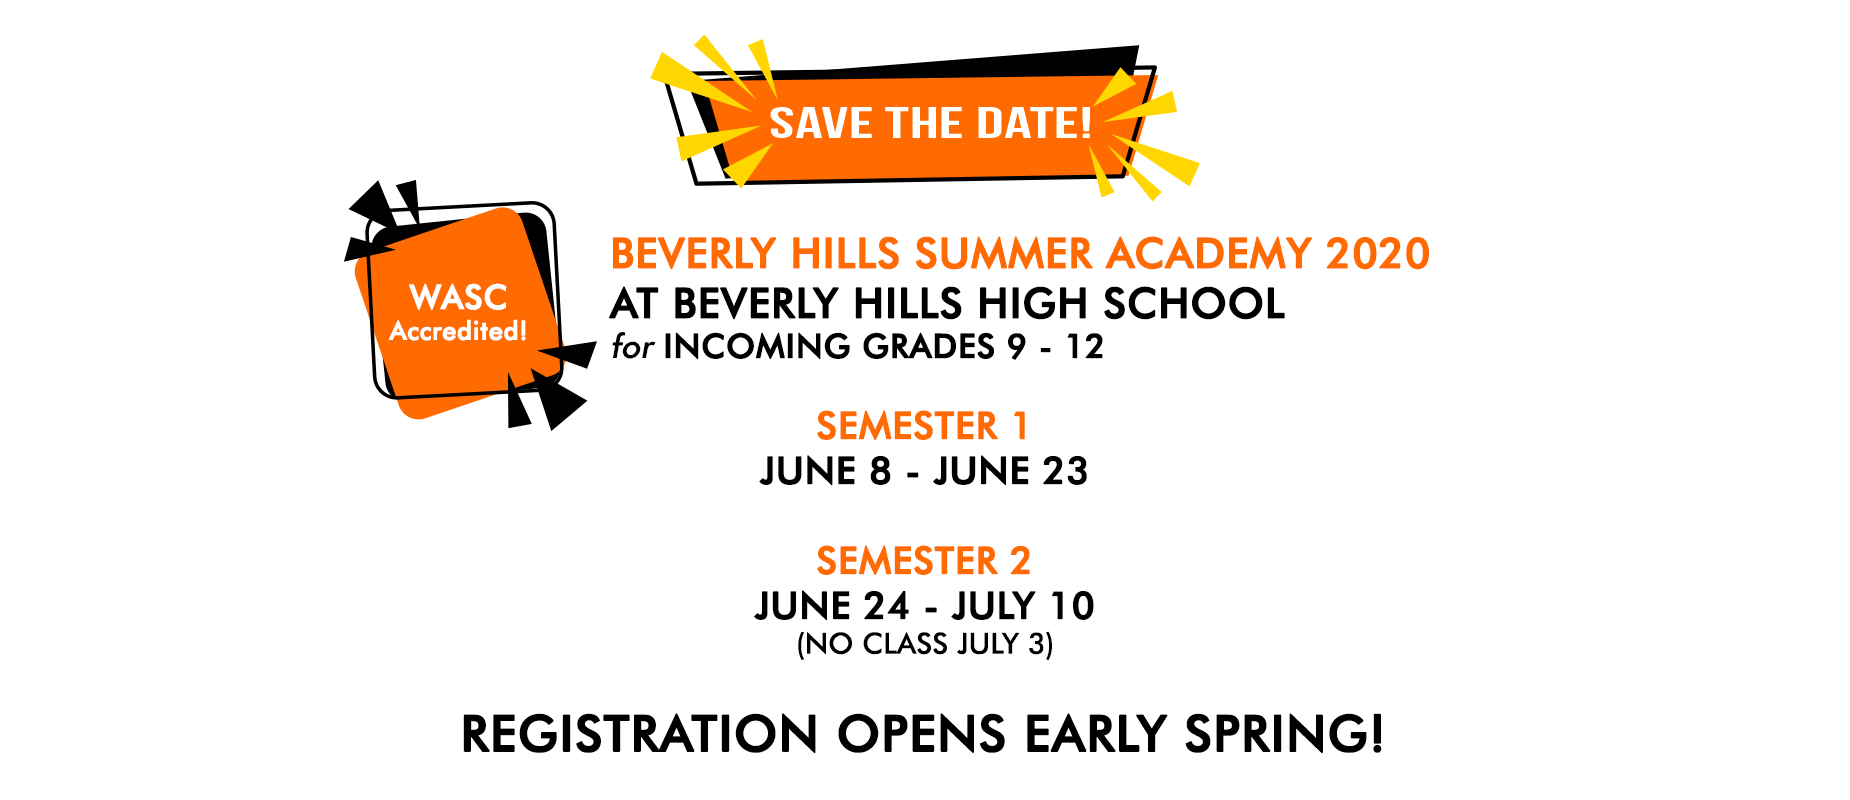 BHEF Summer School Academy 2020 at BHHS for incoming grades 9 - 12. June 8 -  July 10, no class July 3. Registration opens early spring.